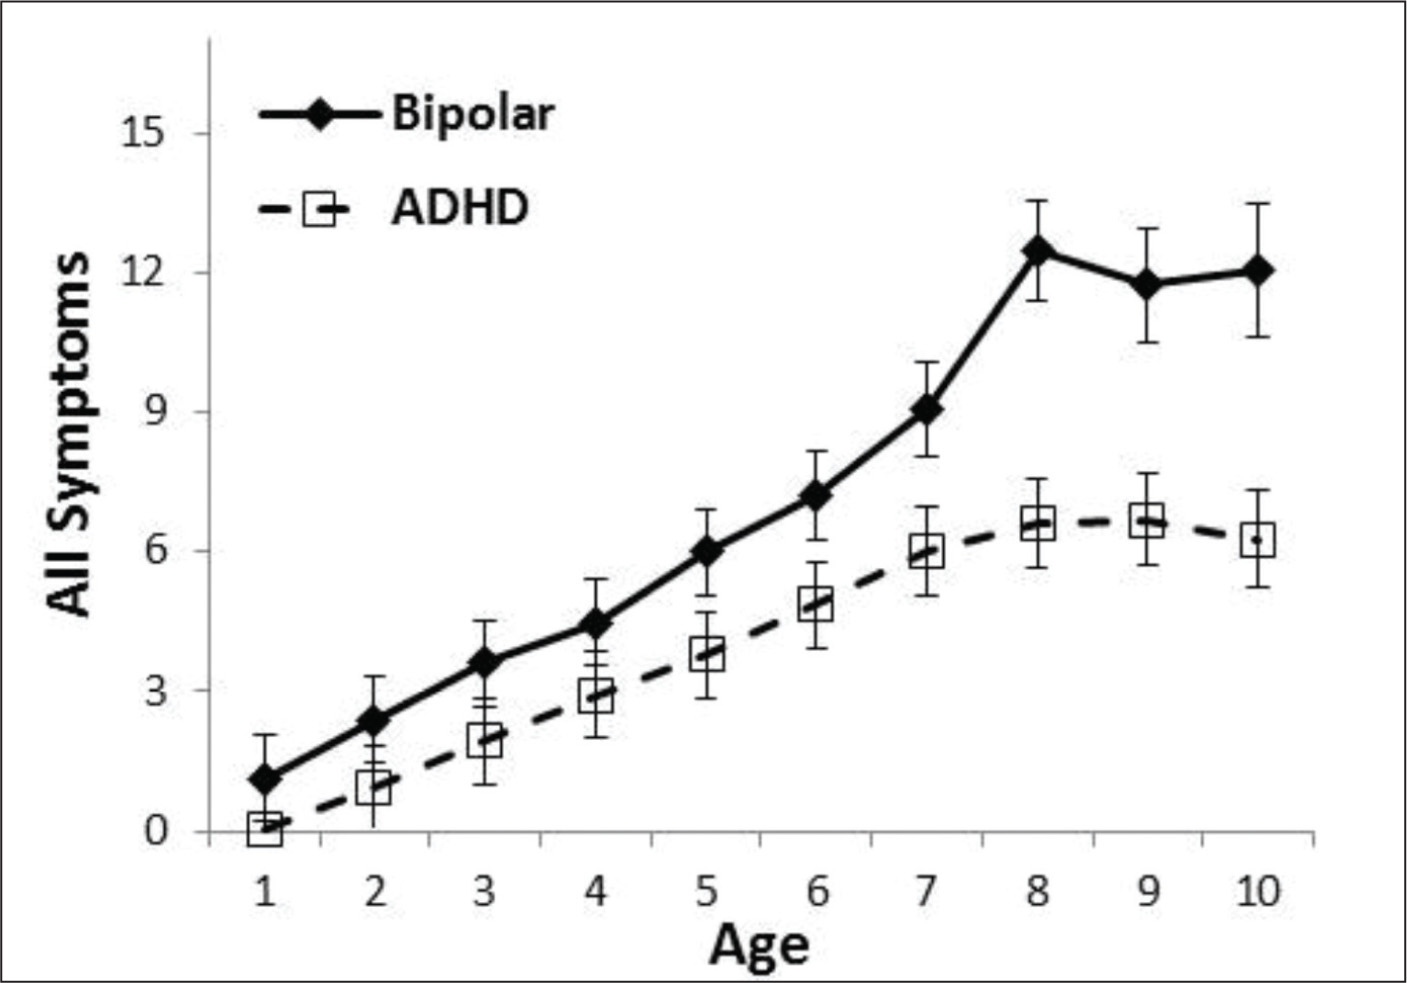 Greater accumulation of symptoms in prepubertal onset of bipolar disorder versus attention-deficit/hyperactivity disorder (ADHD).